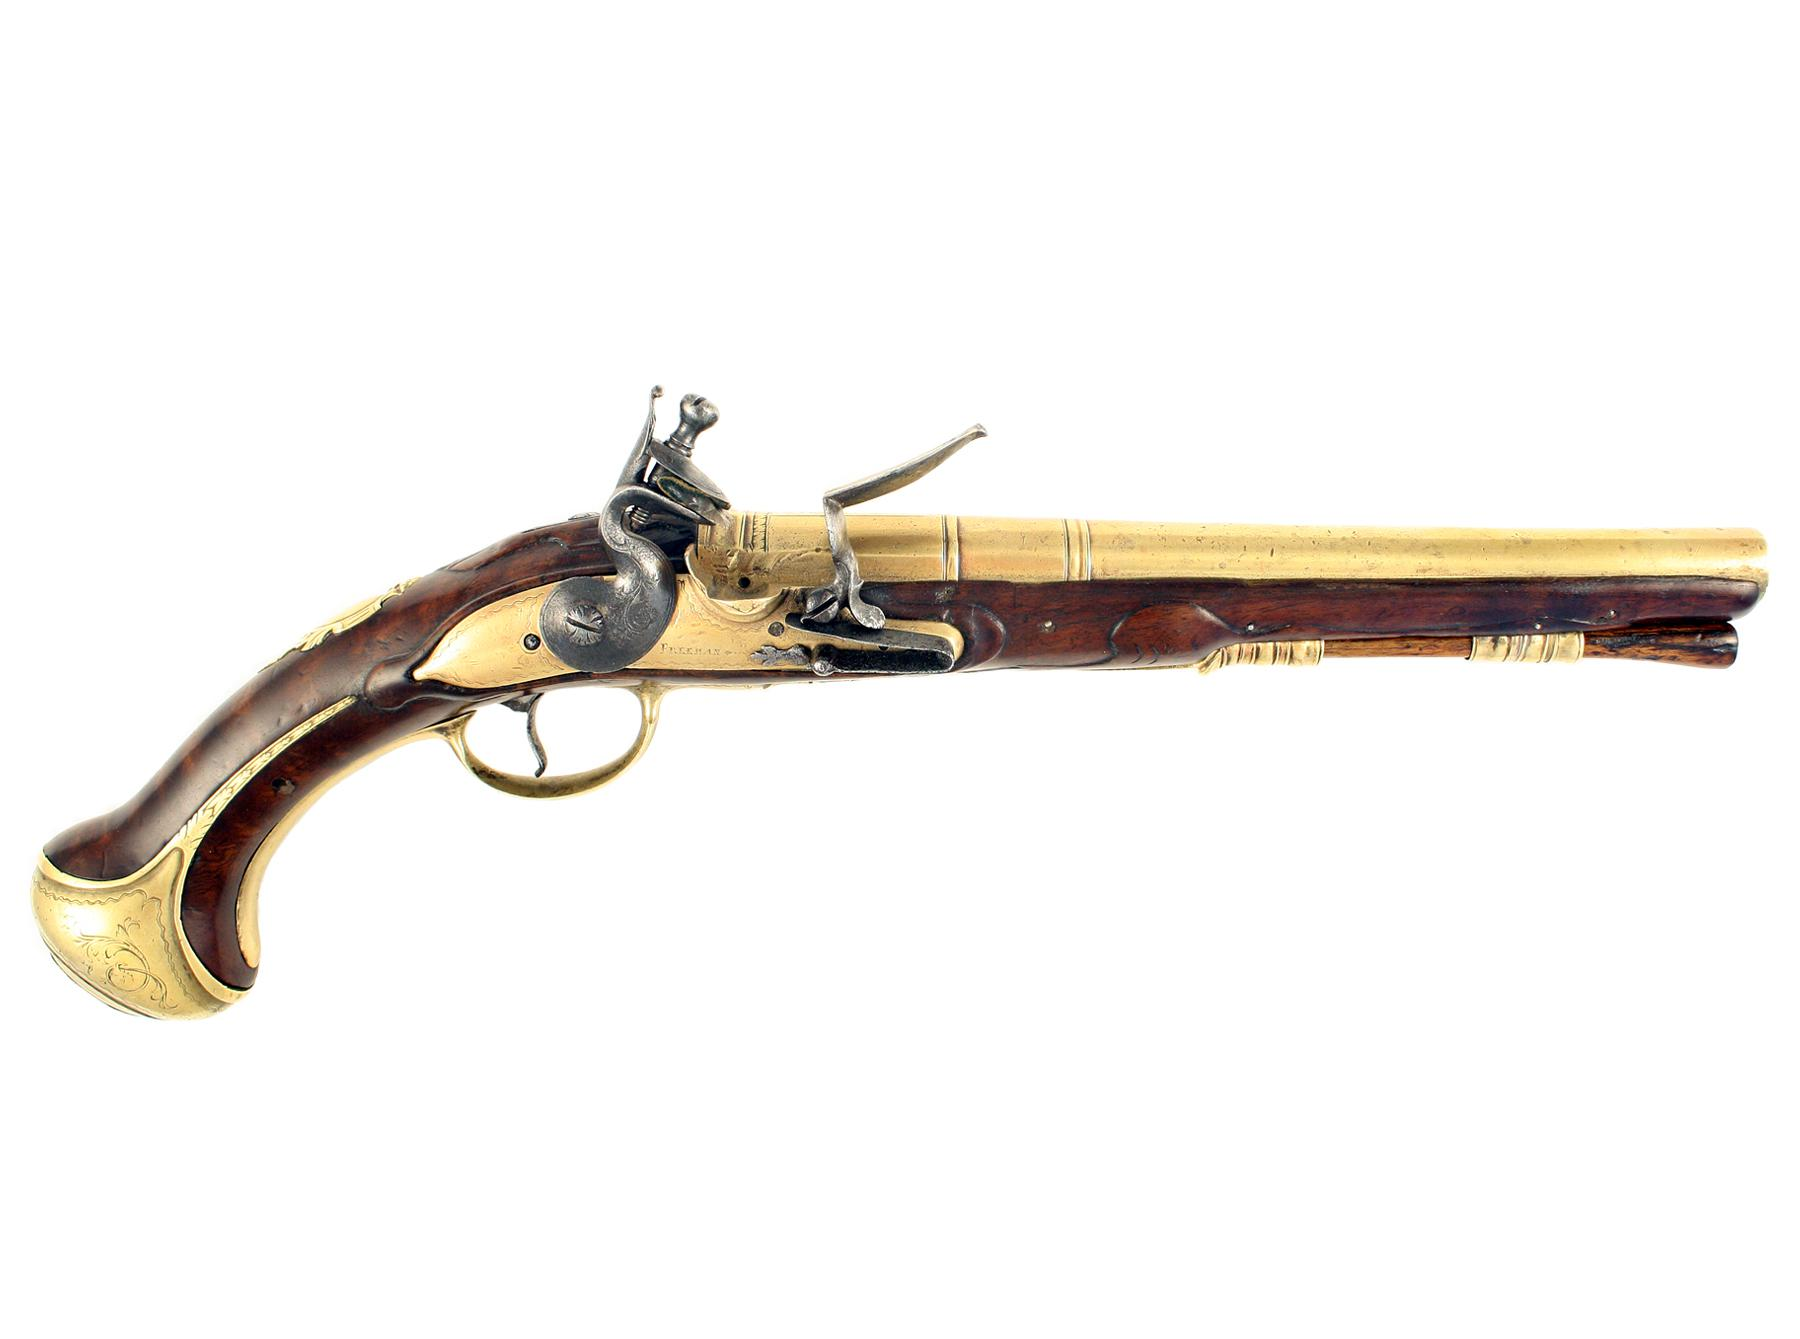 An Early Flintlock Pistol